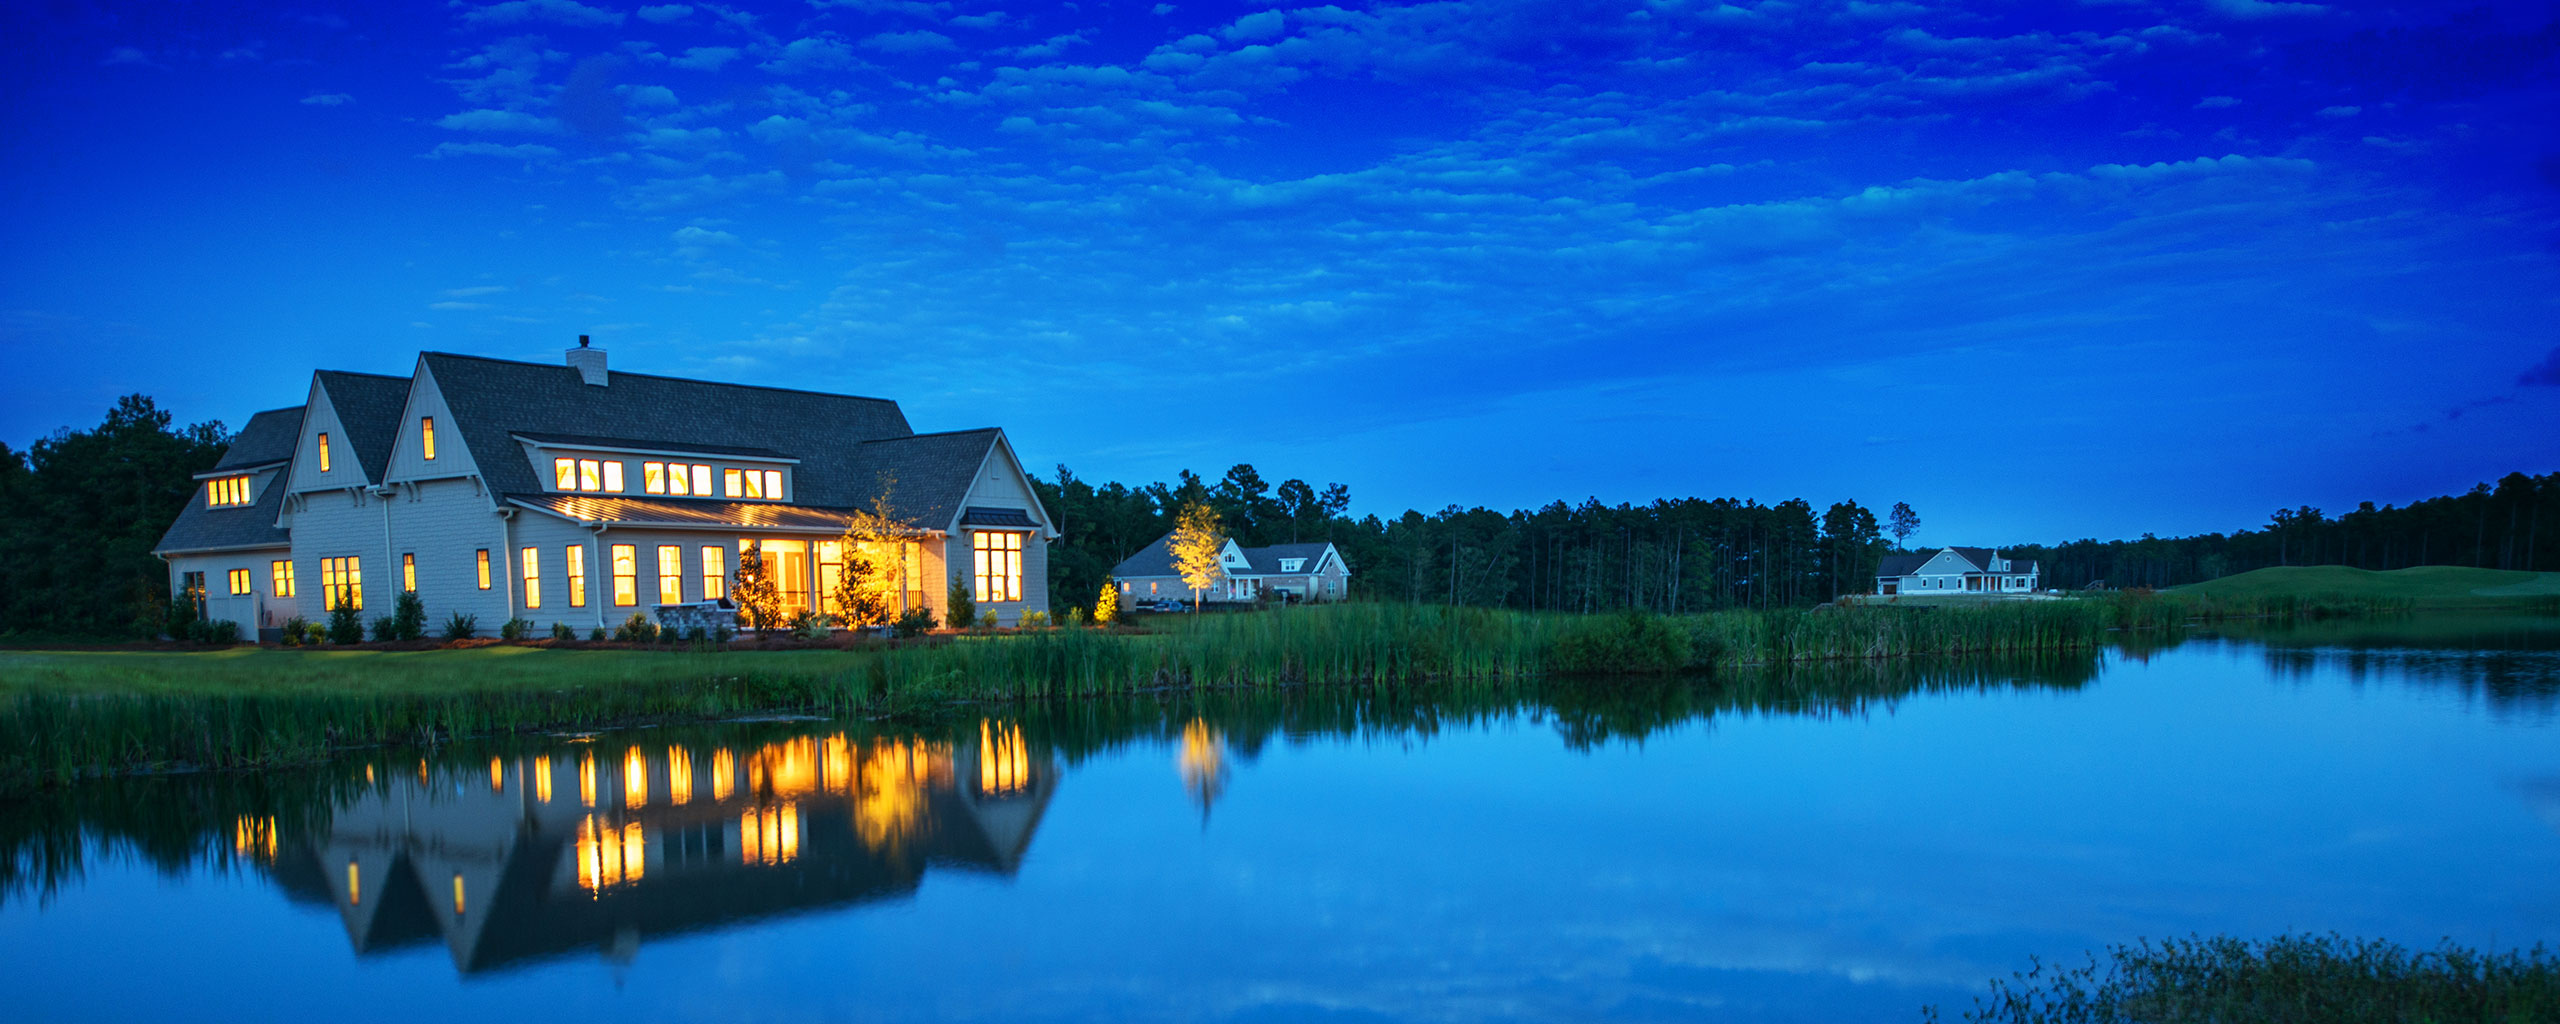 Large beautiful house on the golf course